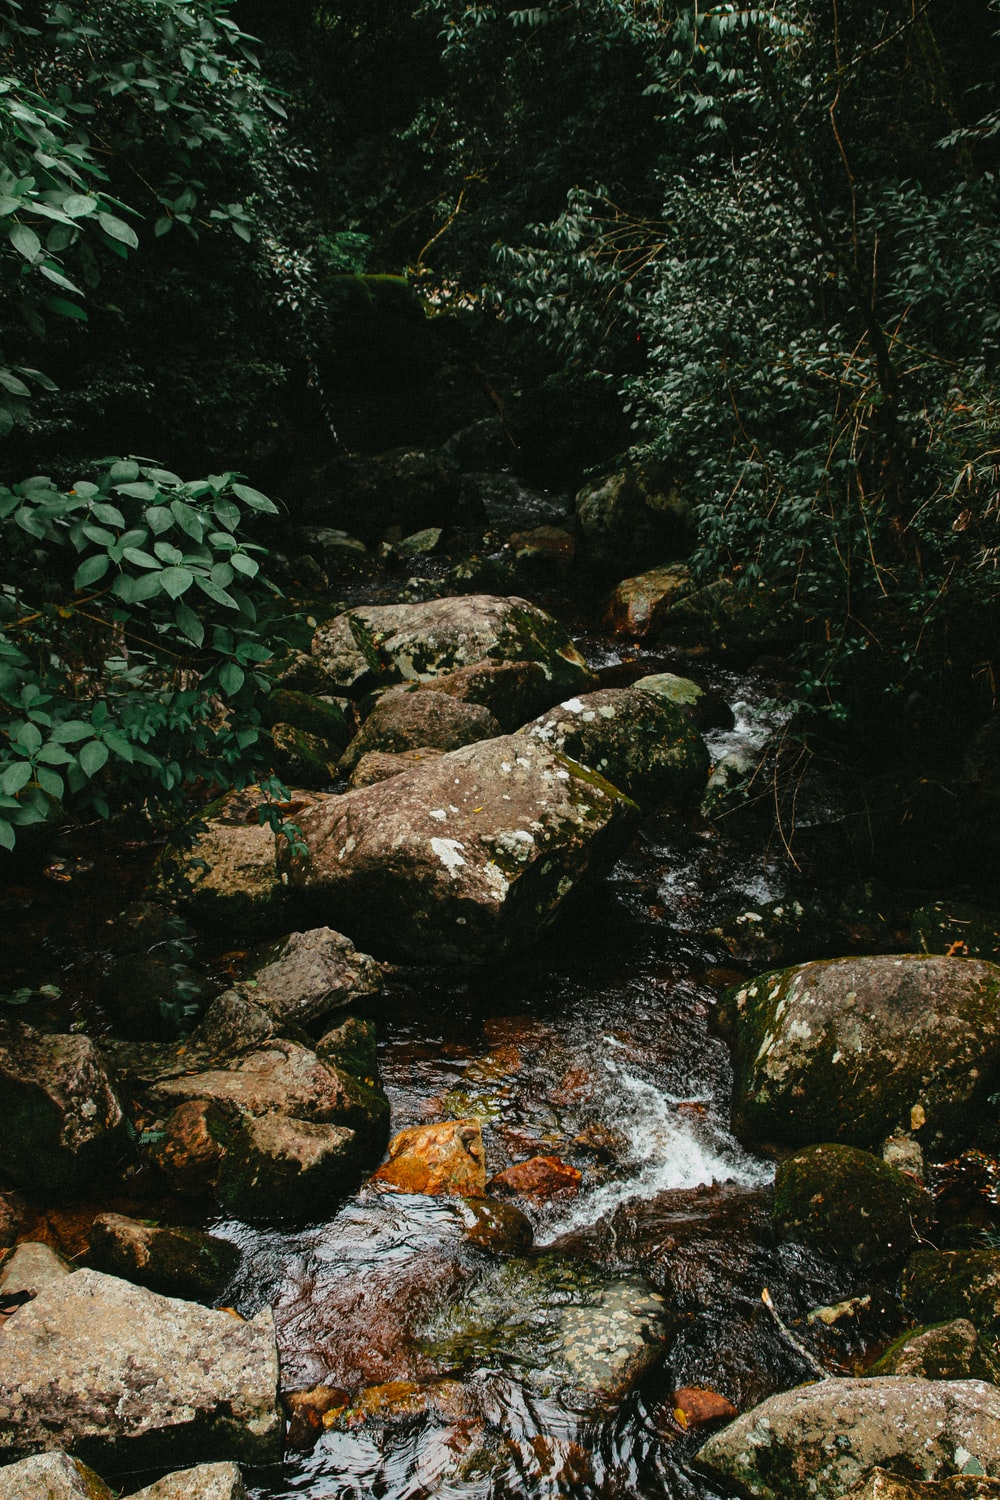 rocky river with rocks and green moss